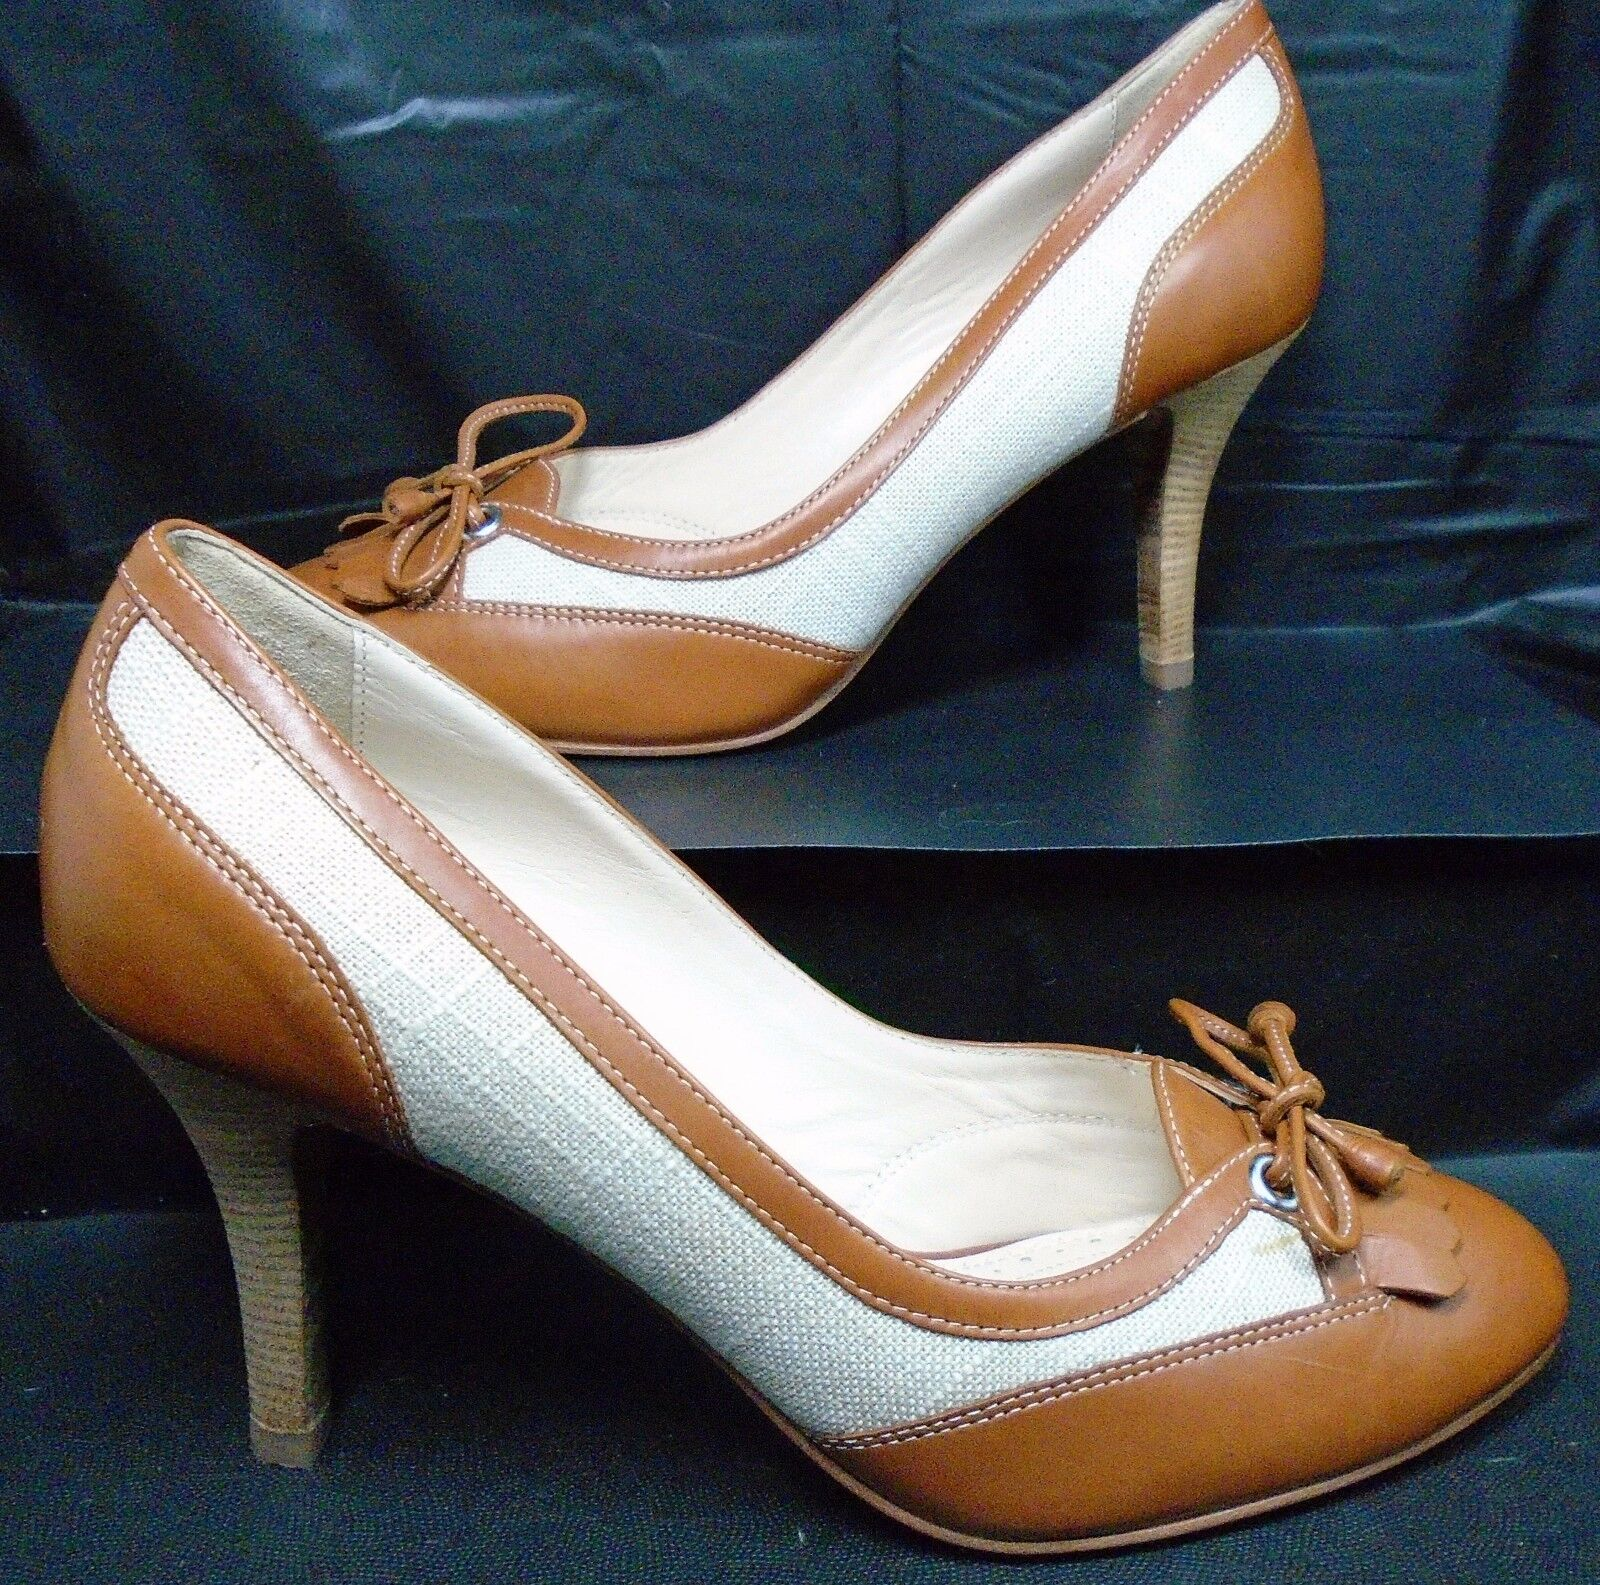 BROOKS BROTHERS Career Braun Leder Weiß Fabric Pumps Heels US 7 Minimal Wear